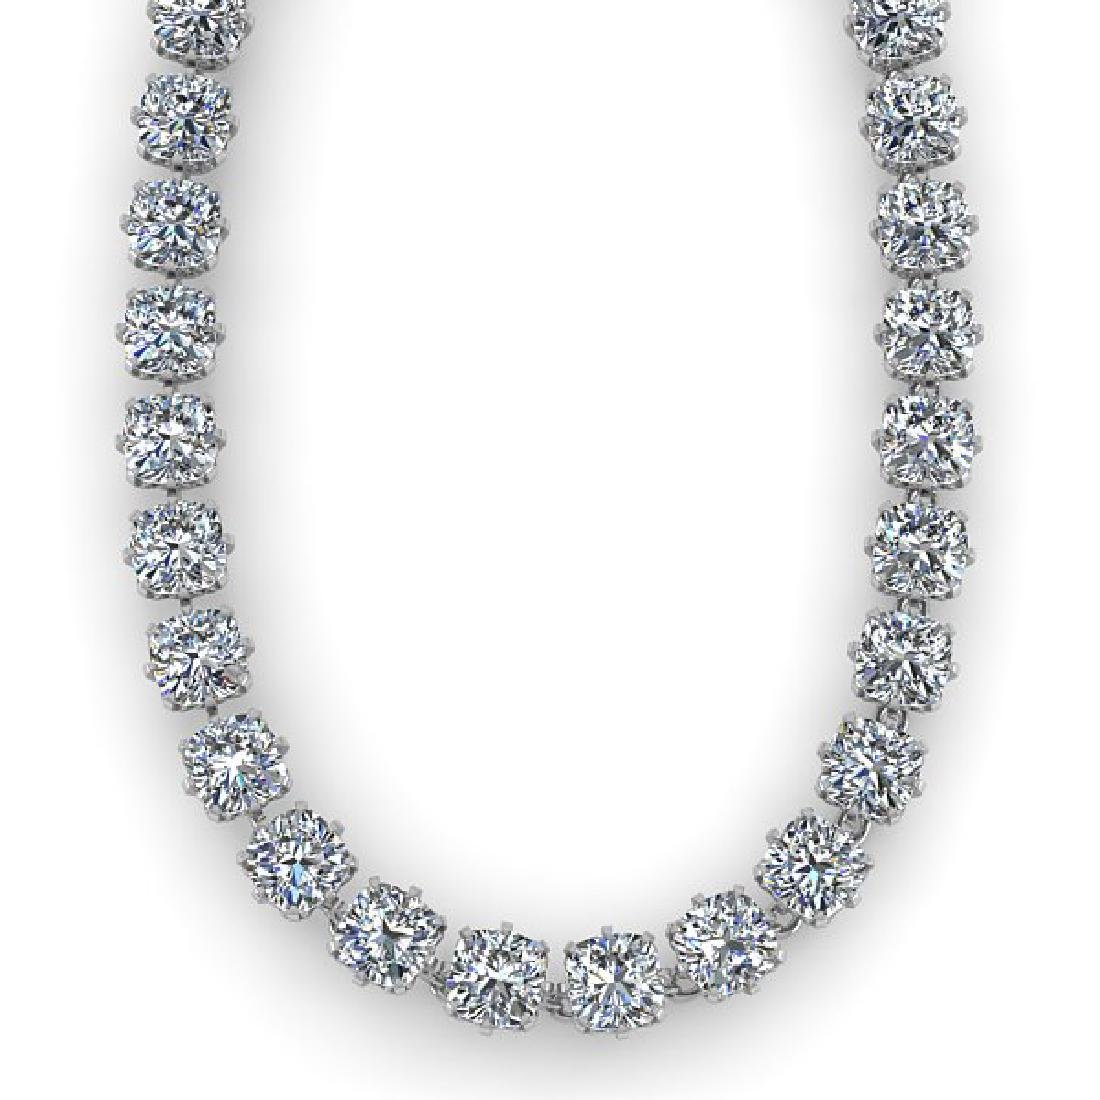 28 CTW Oval Cut SI Certified Diamond Necklace 18K White - 2